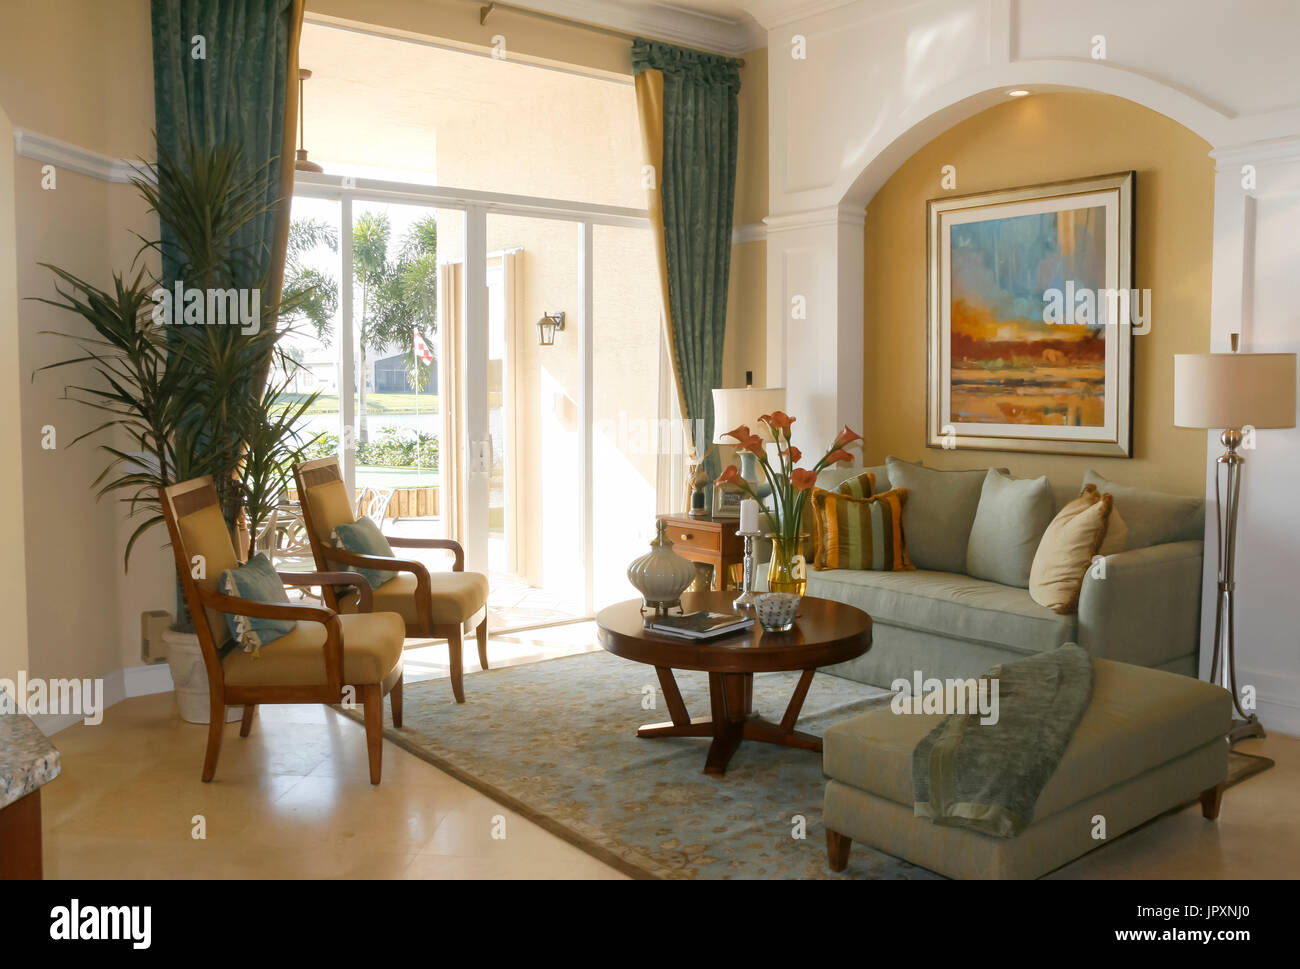 Decorated living room with earthy colors. - Stock Image